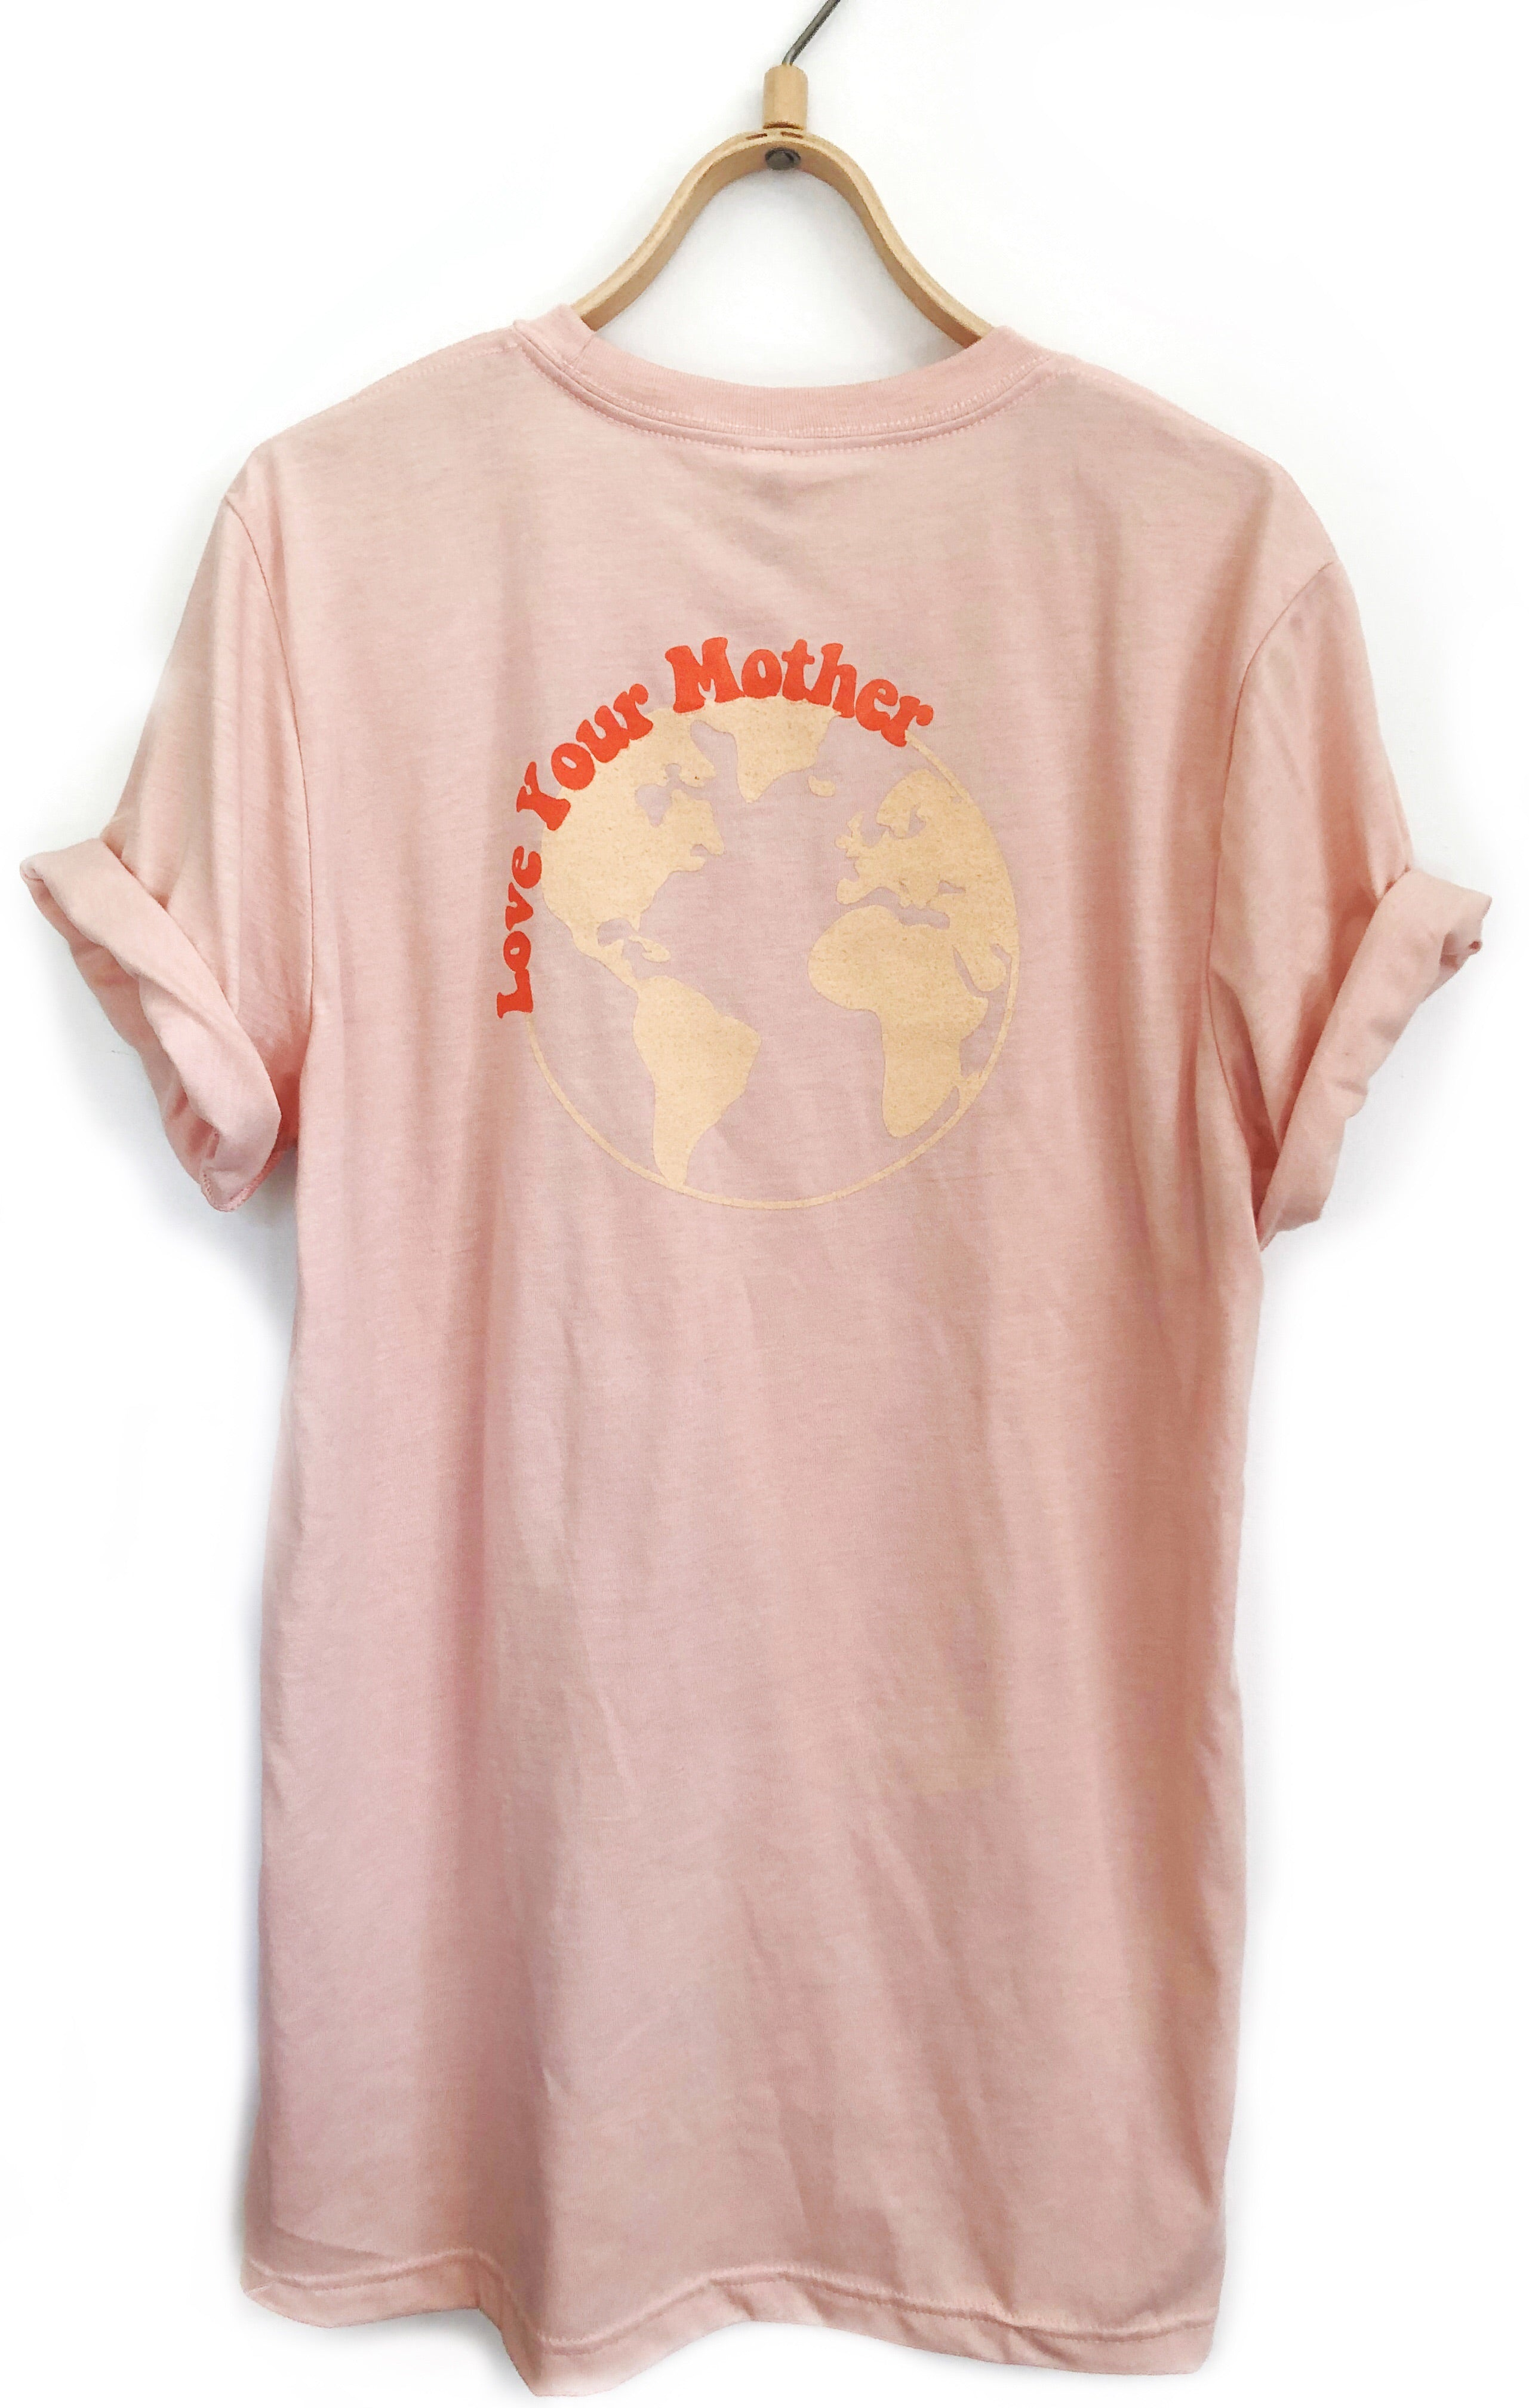 Not for Kids Tee - Peach